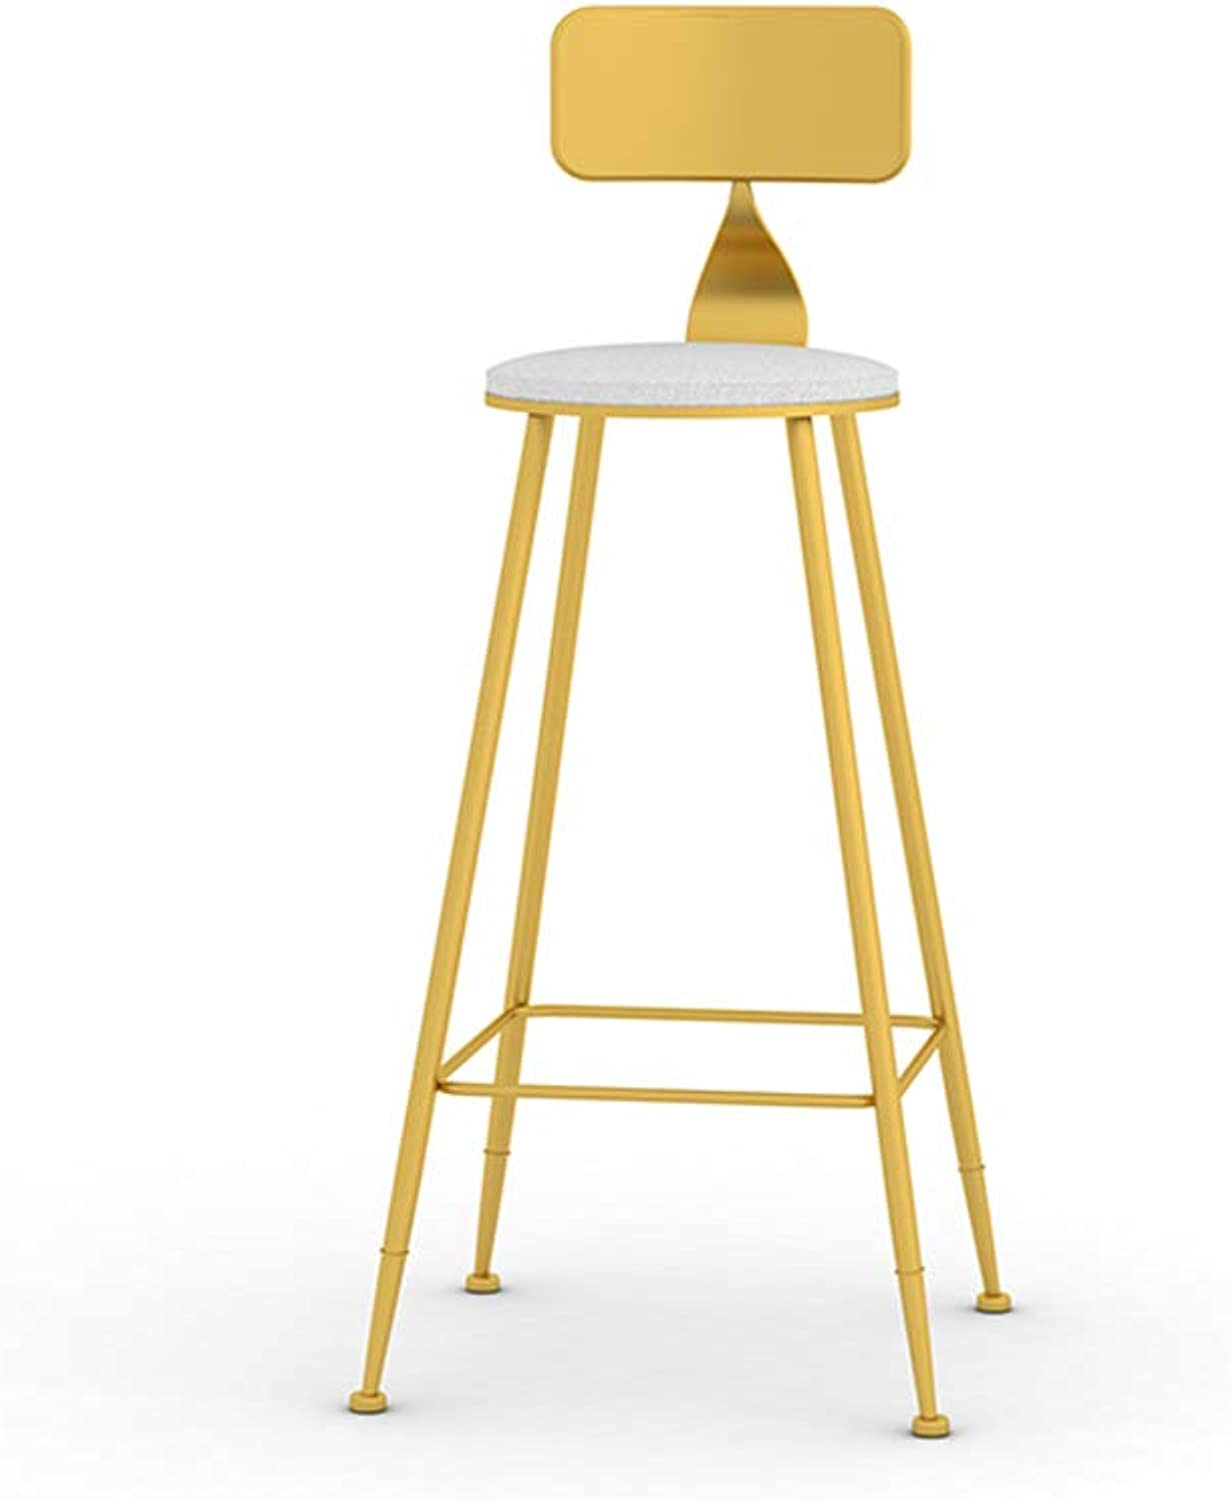 Nordic Style Bar Stool, Modern Minimalist High Chair Bar Chair, Fashion Creative Personality Backrest High Stool Bar Home